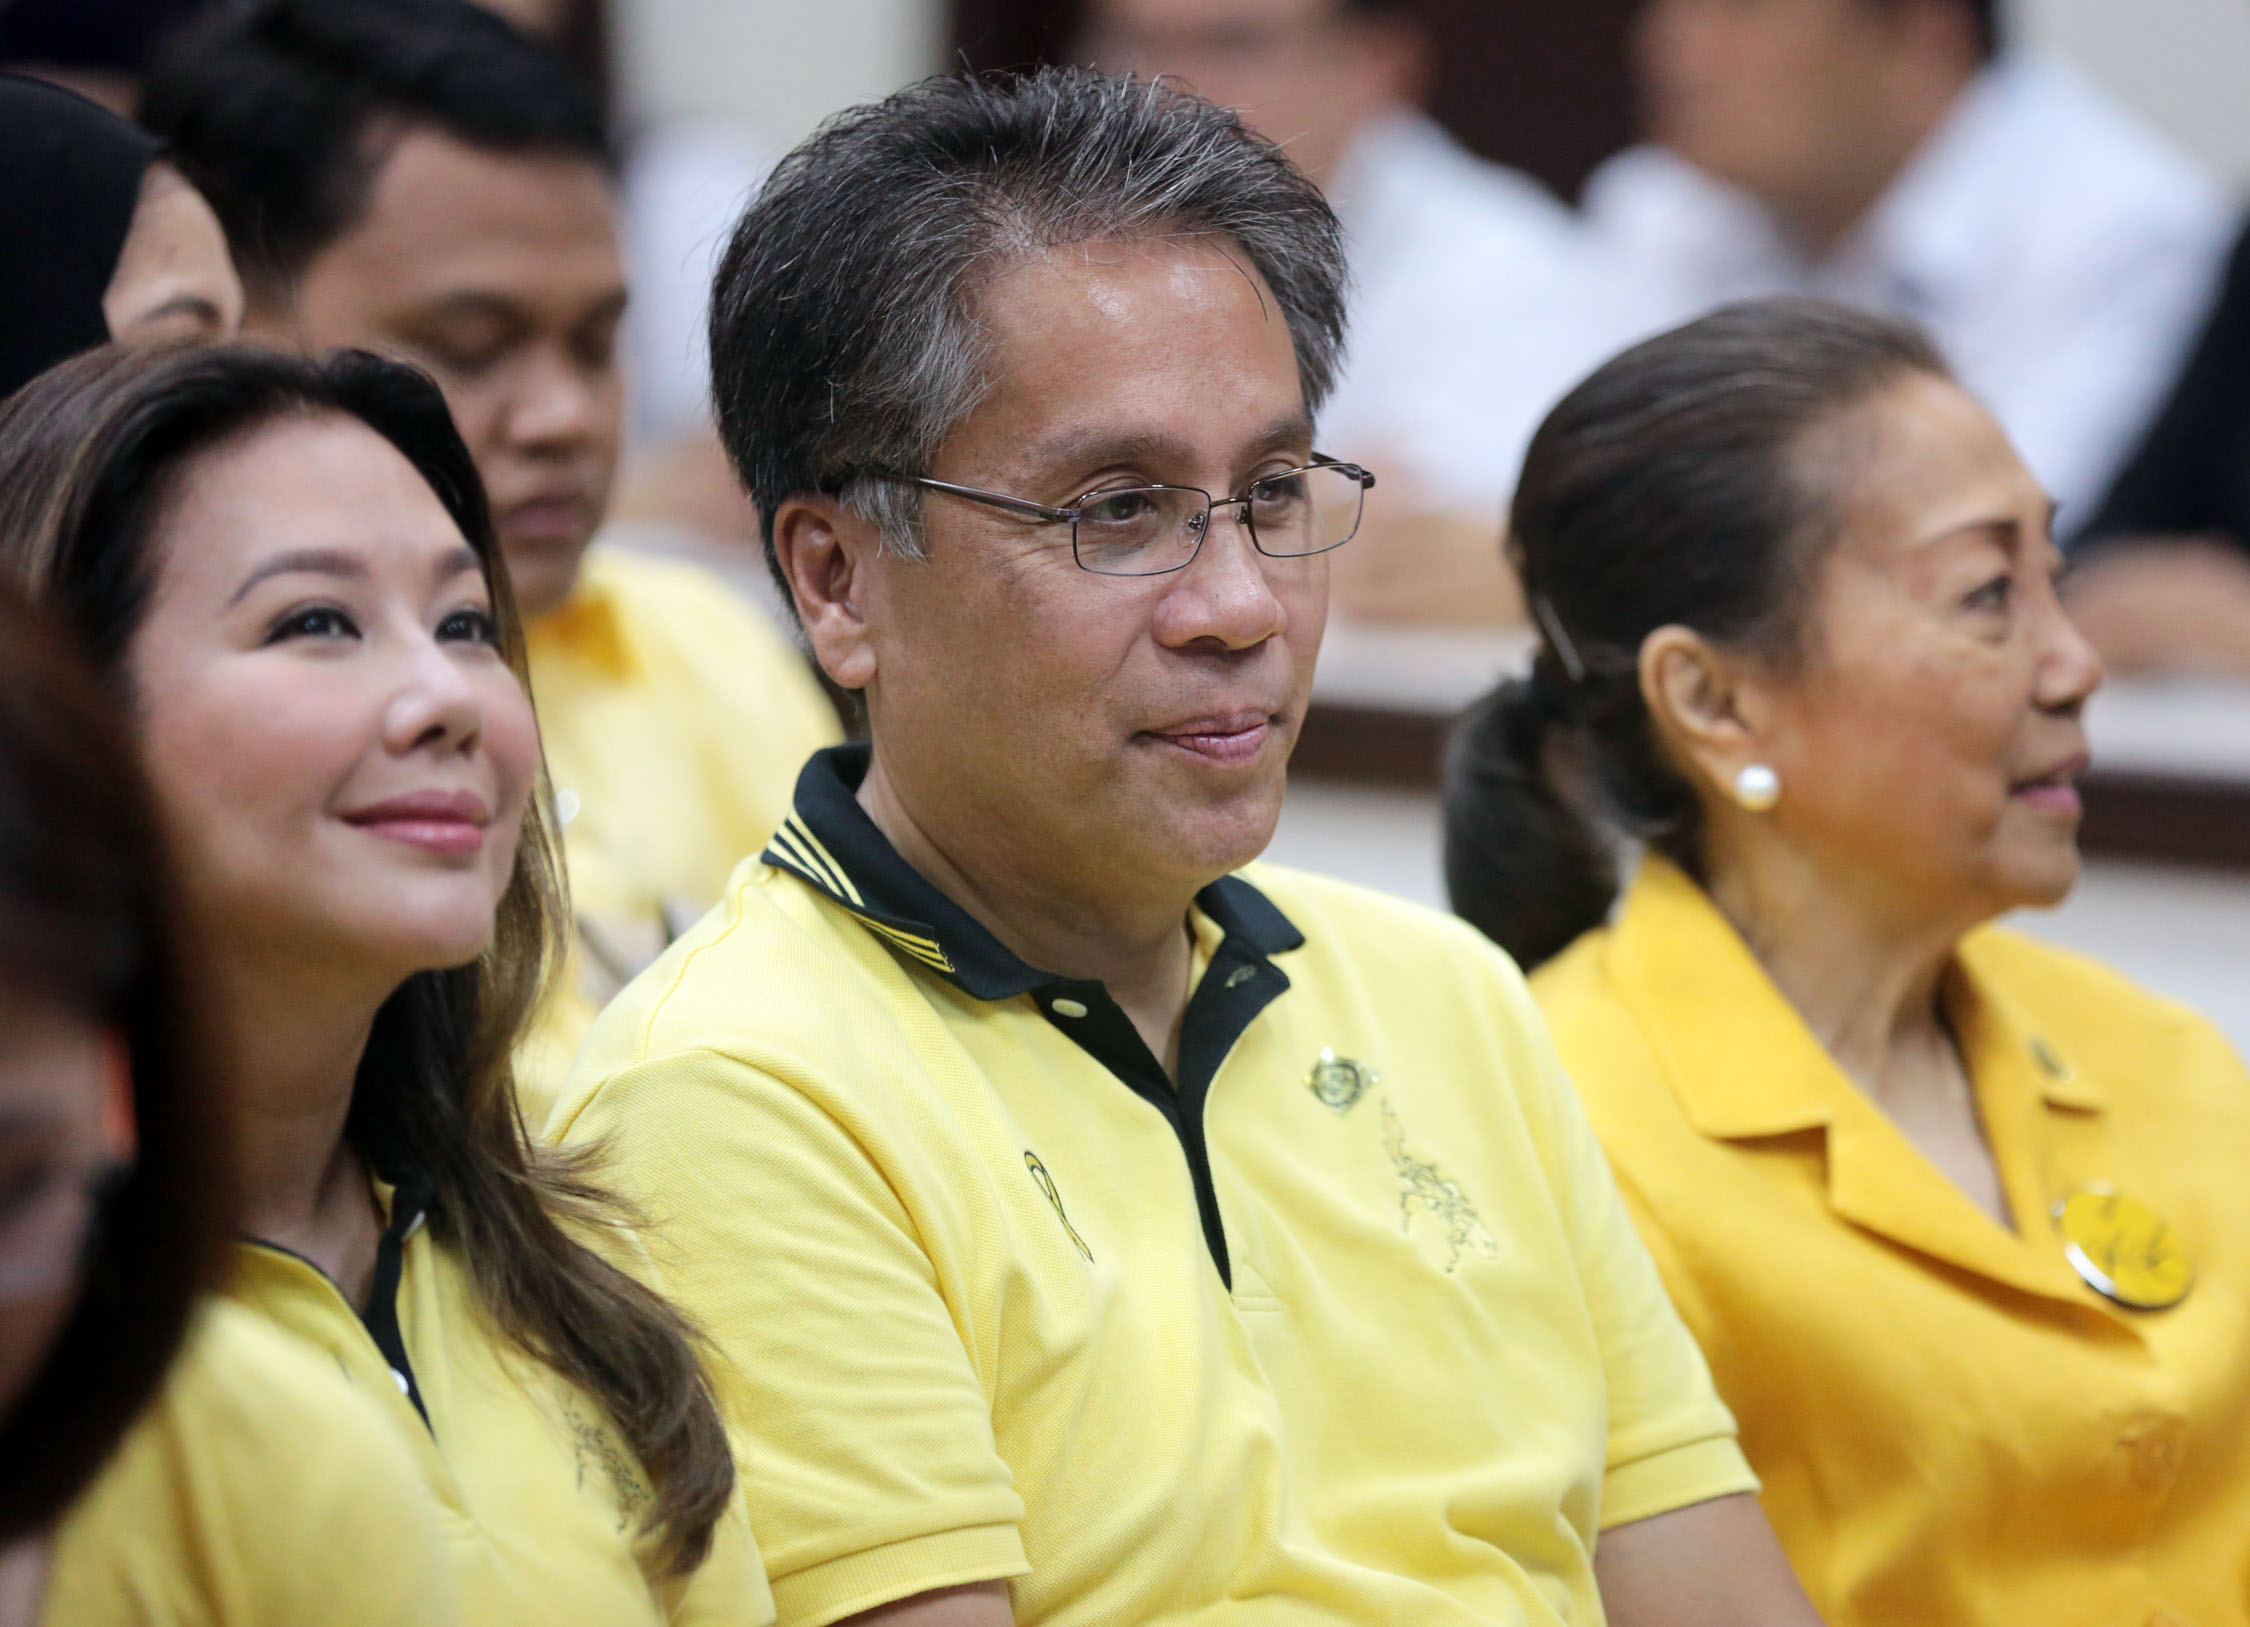 A FAMILY AFFAIR / OCTOBER 15, 2015 Mar Roxas in a pensive mood flank by wife Korina Sanchez and mother Judy Araneta Roxas during his filing of certificate of candidacy at the COMELEC on Thursday, October 15, 2015. INQUIRER PHOTO / GRIG C. MONTEGRANDE